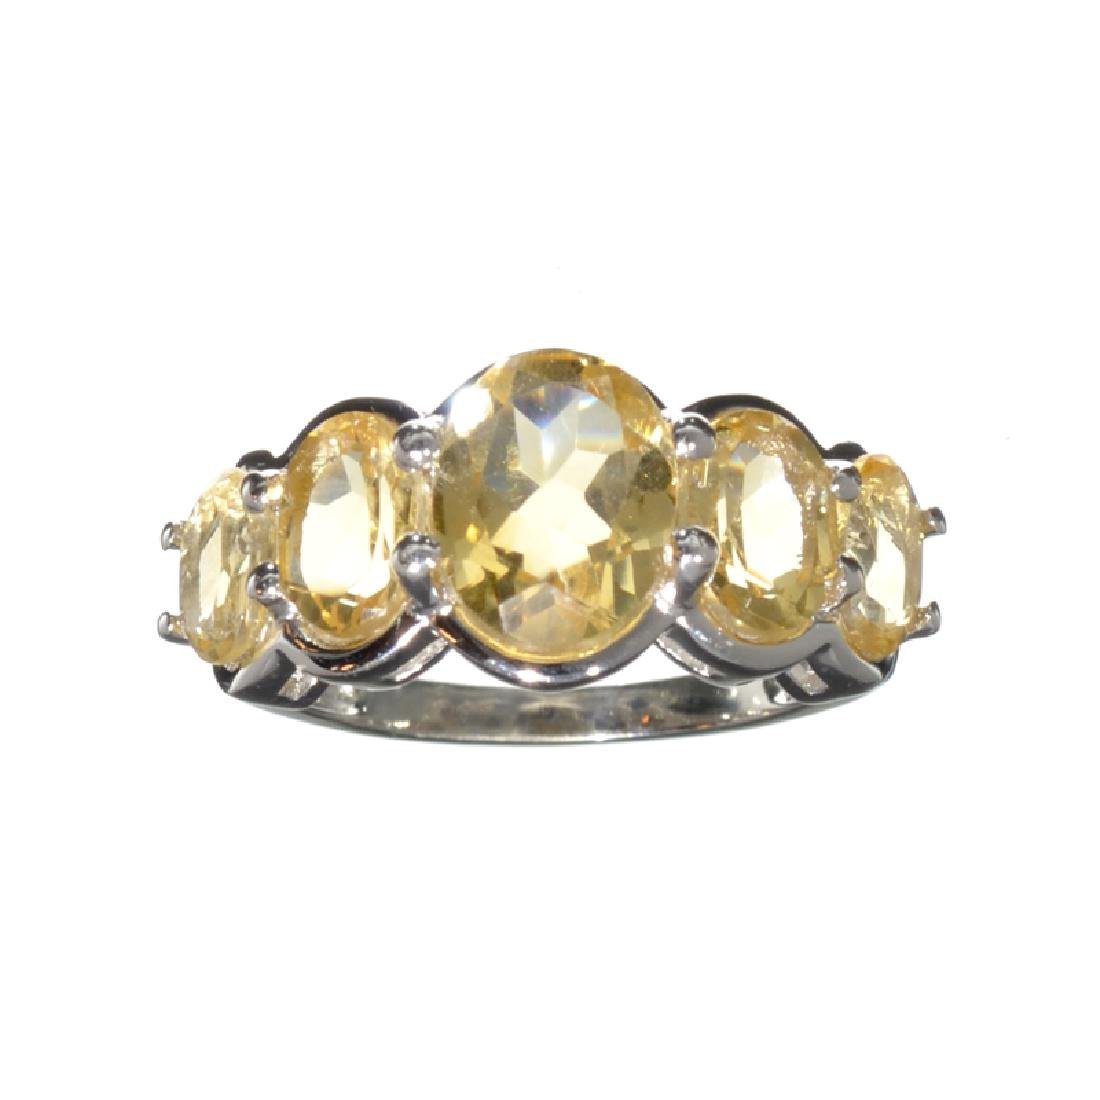 APP: 0.4k Fine Jewelry 4.26CT Oval Cut Citrine And